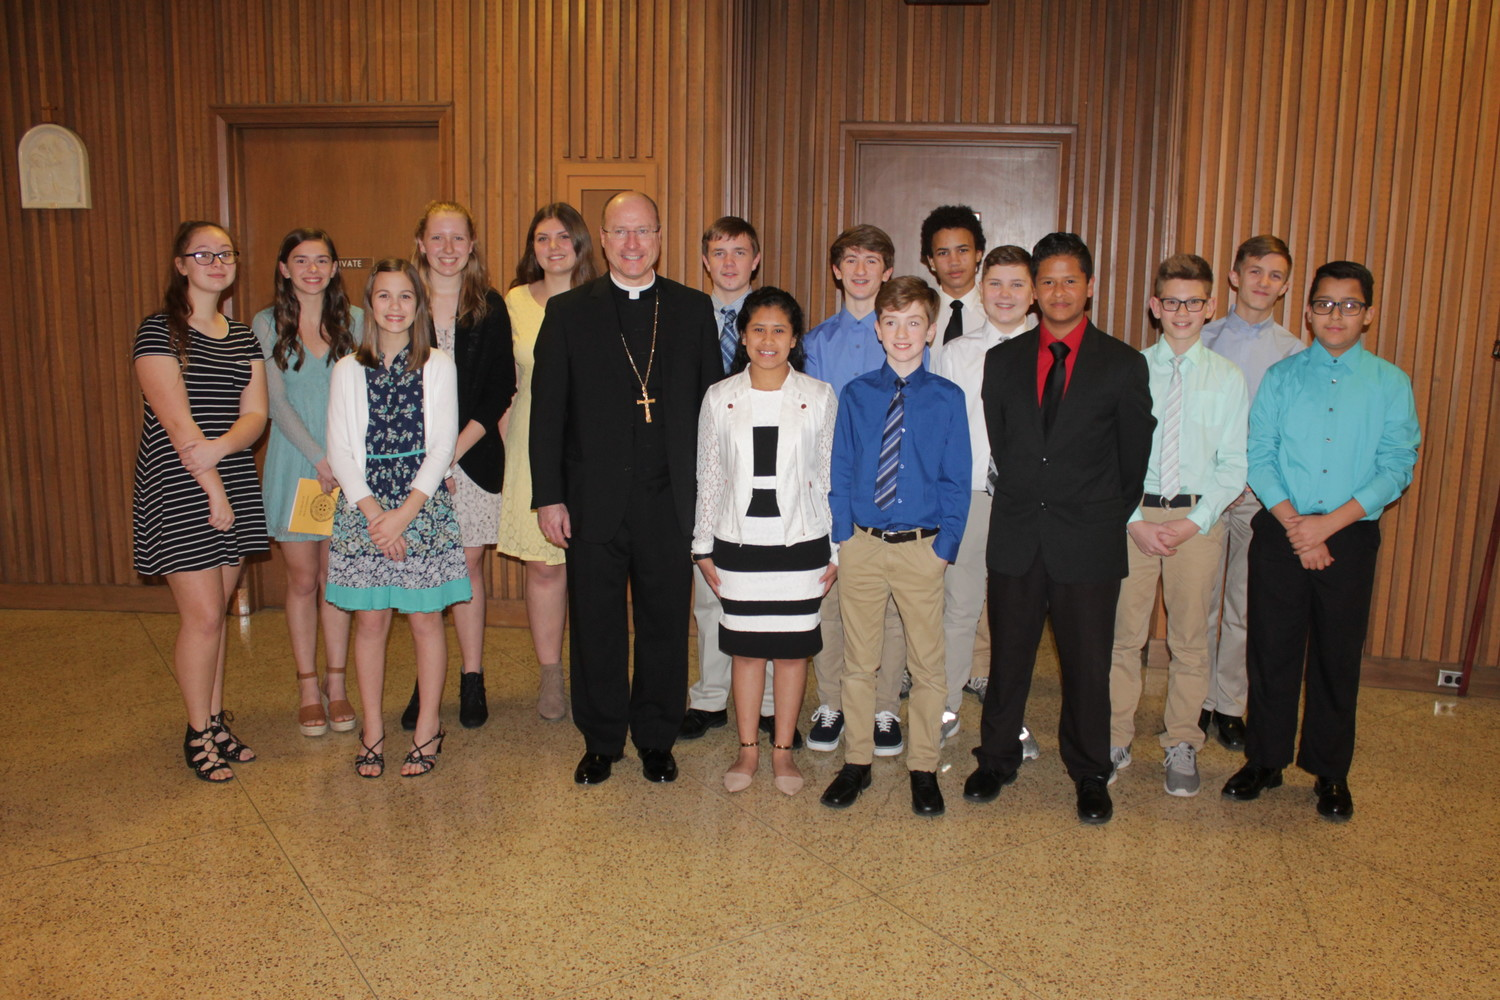 Students from Sacred Heart High School in Sedalia gather for a photo with Bishop W. Shawn McKnight after the Chrism Mass in the Cathedral of St. Joseph.